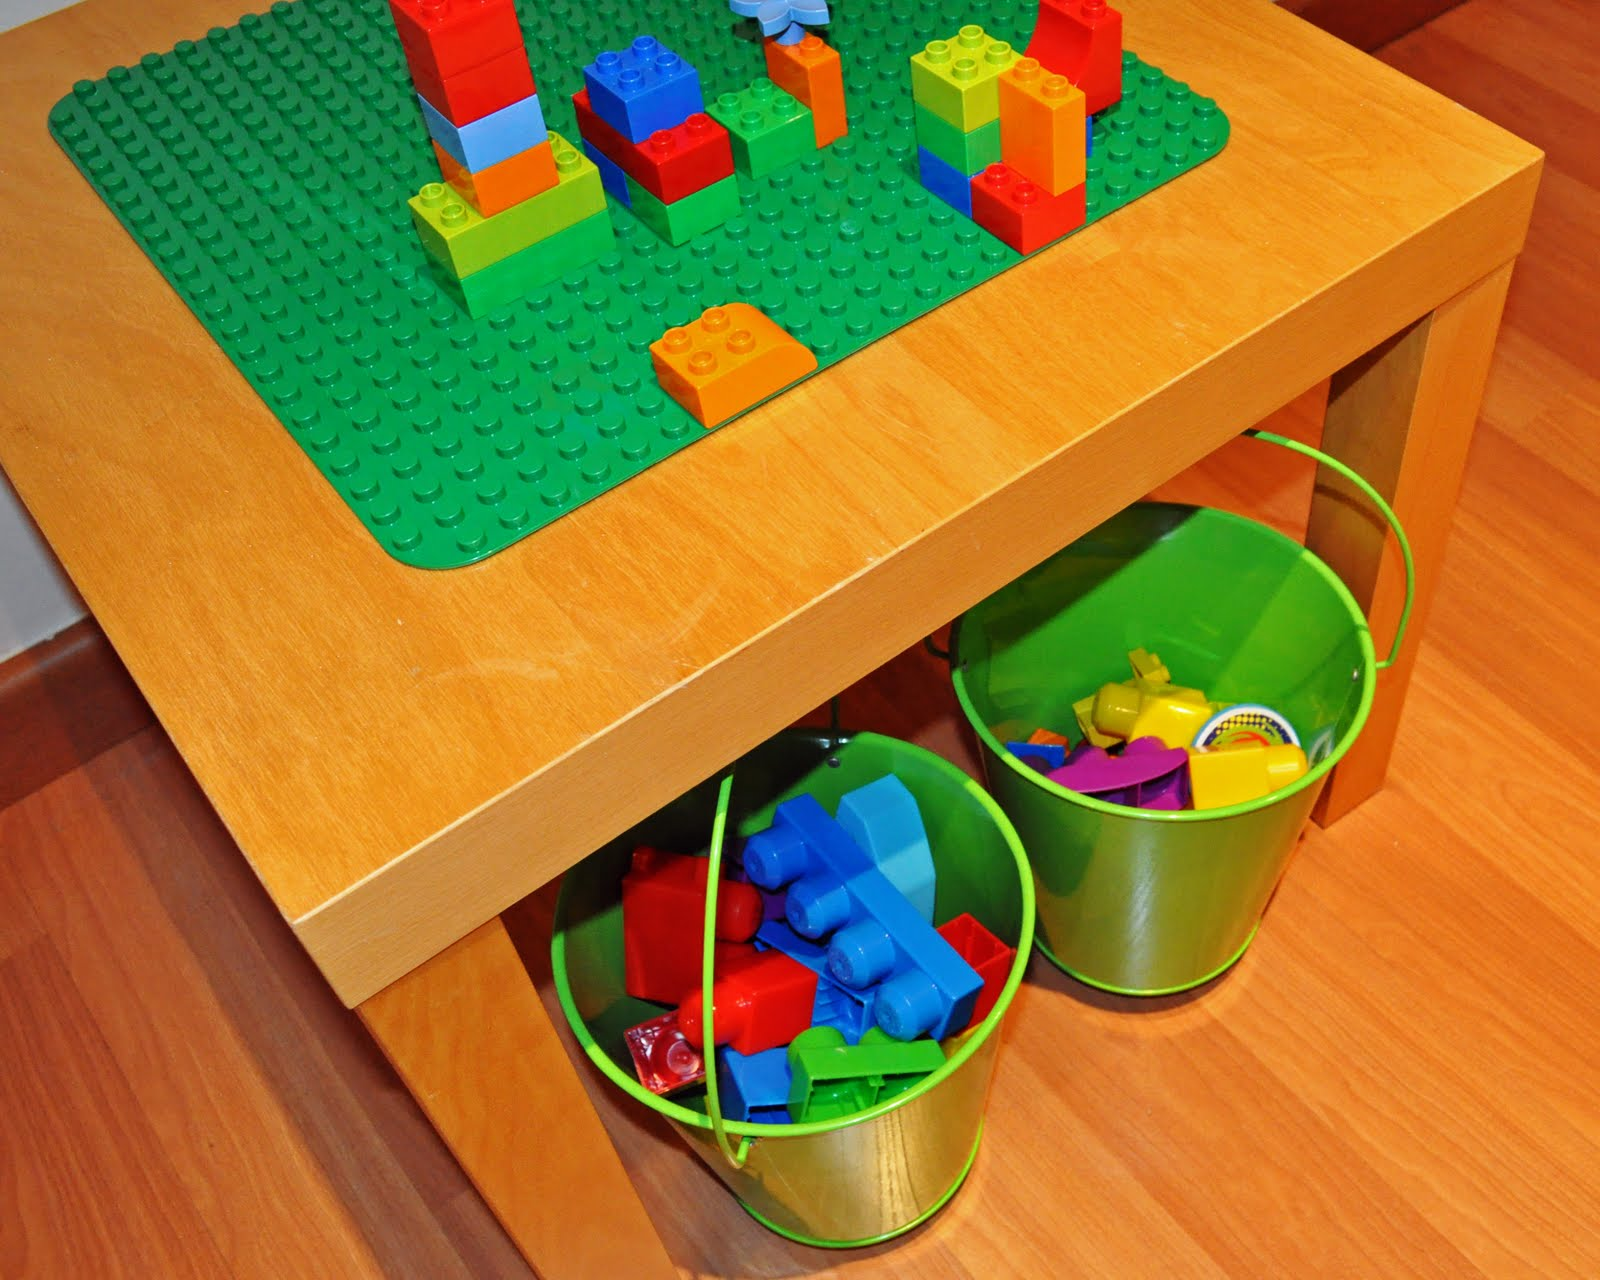 Ikea Lack Duplo Lack Lego Table Ikea Hackers